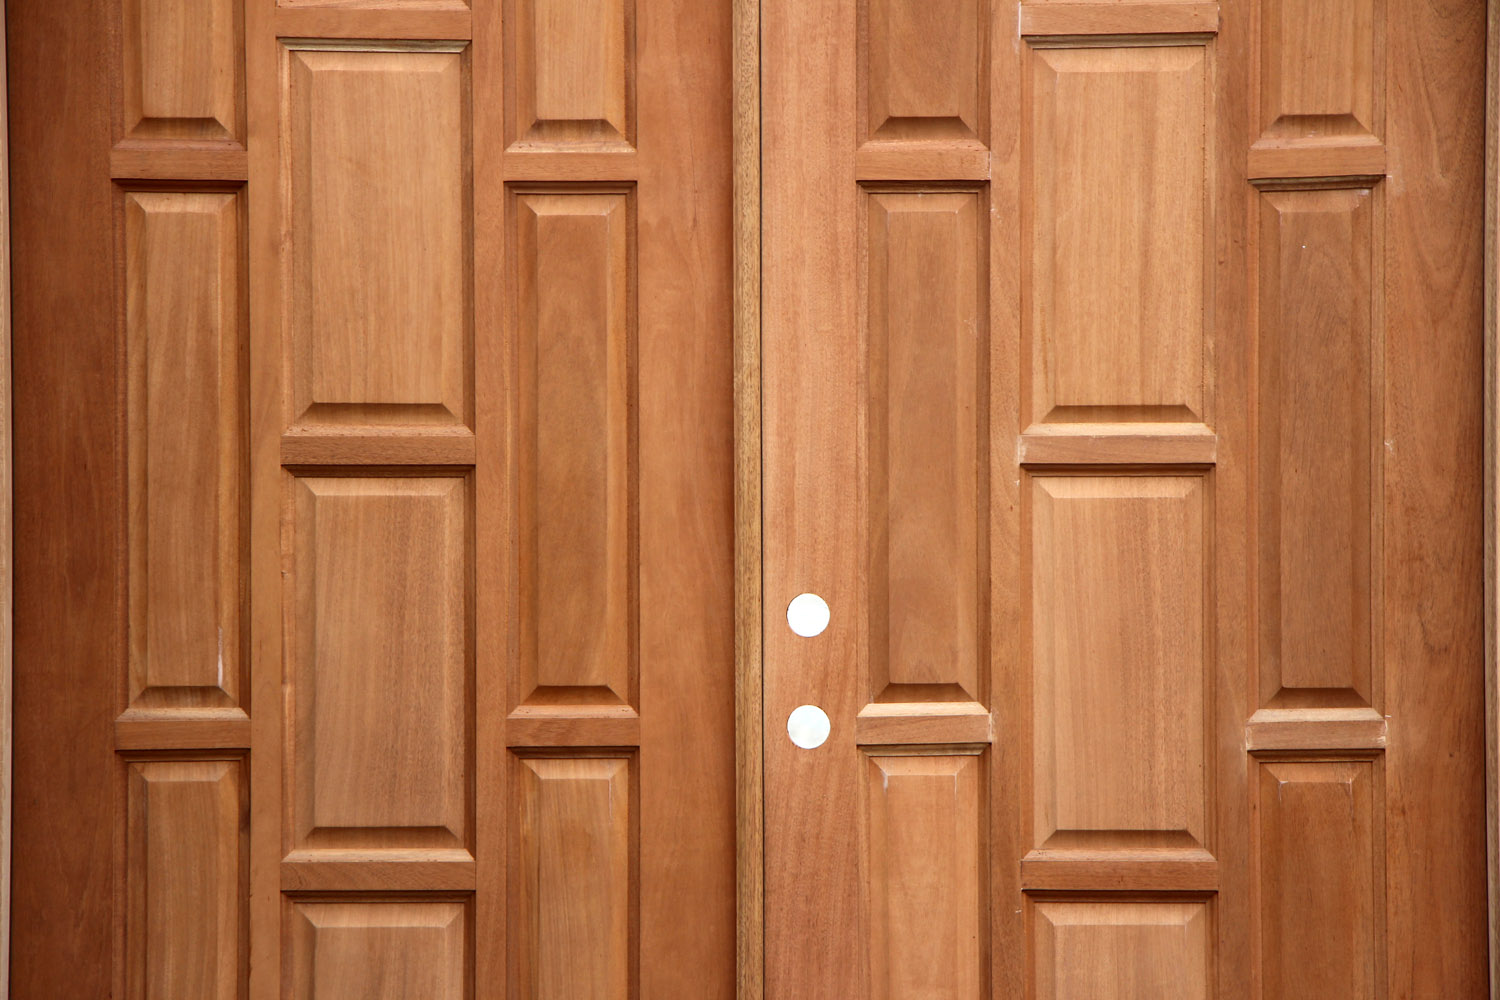 1000 #491B08 Exterior Double Doors Clearance Doors Mahogany pic Clearance Entry Doors 44311500